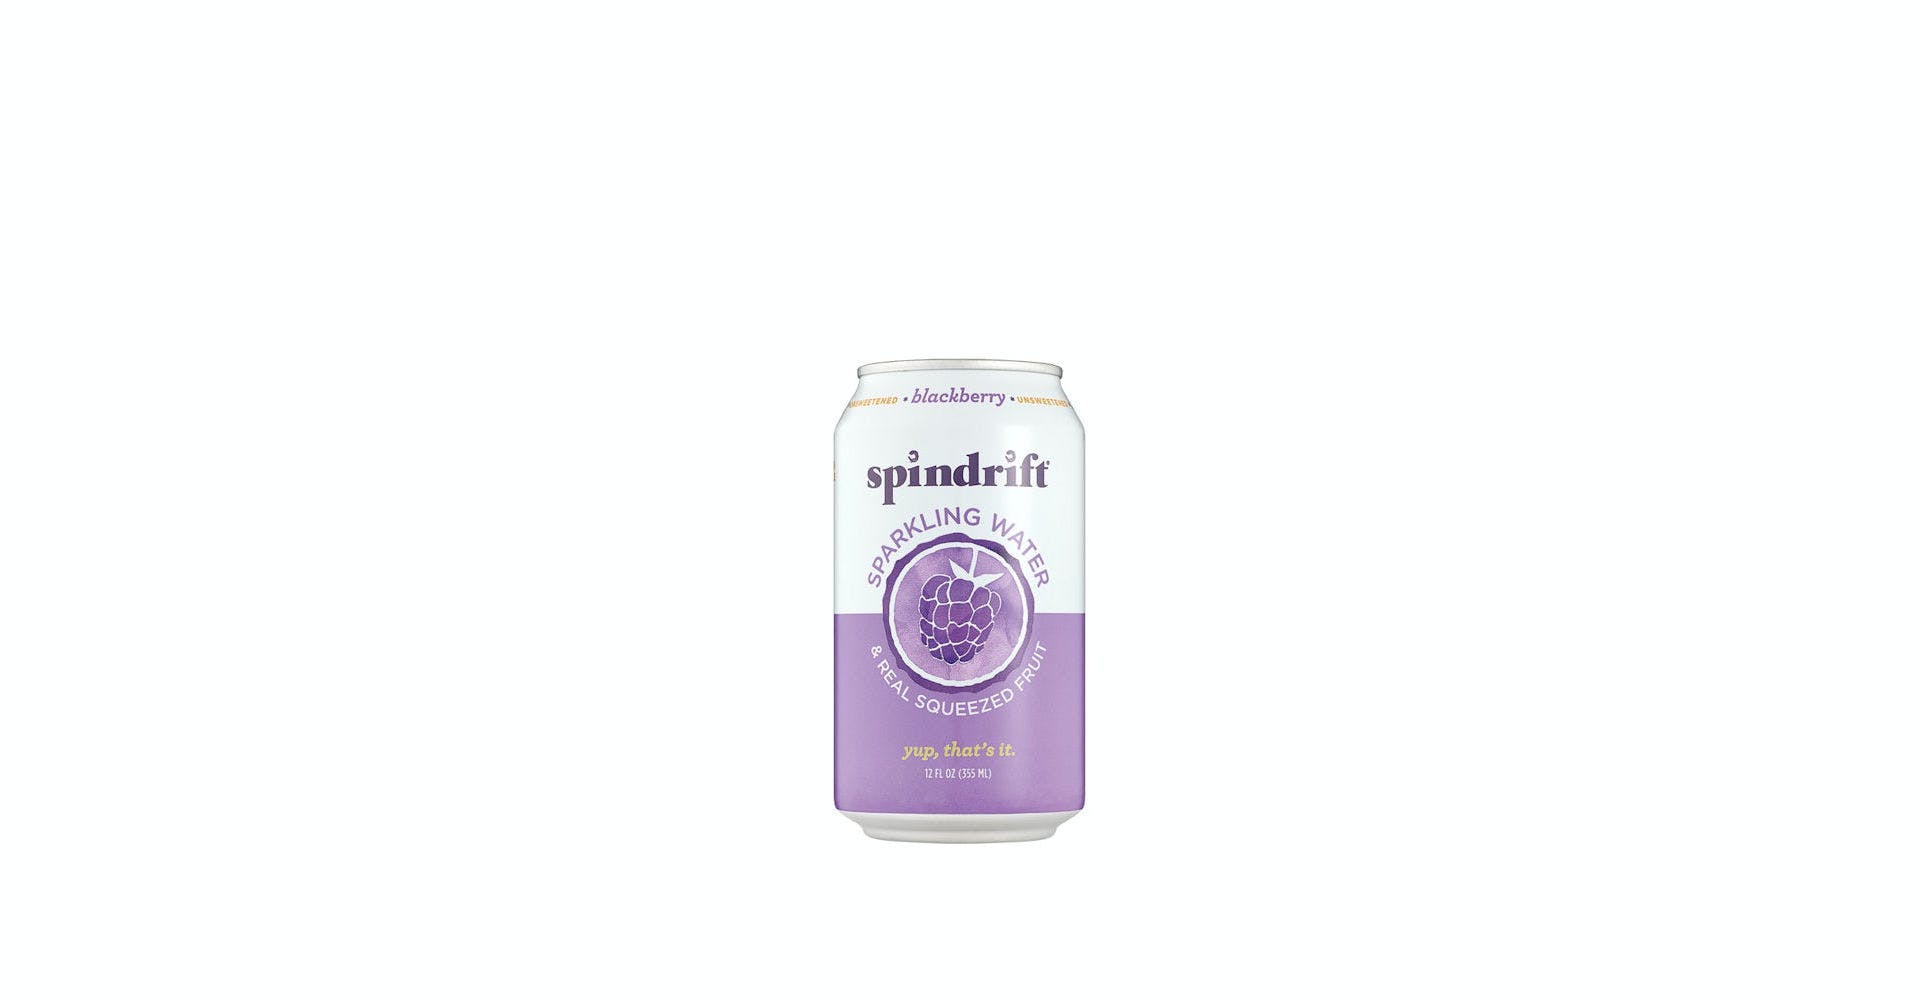 Spindrift Seltzer from Noodles & Company - Wausau Town Center in Wausau, WI